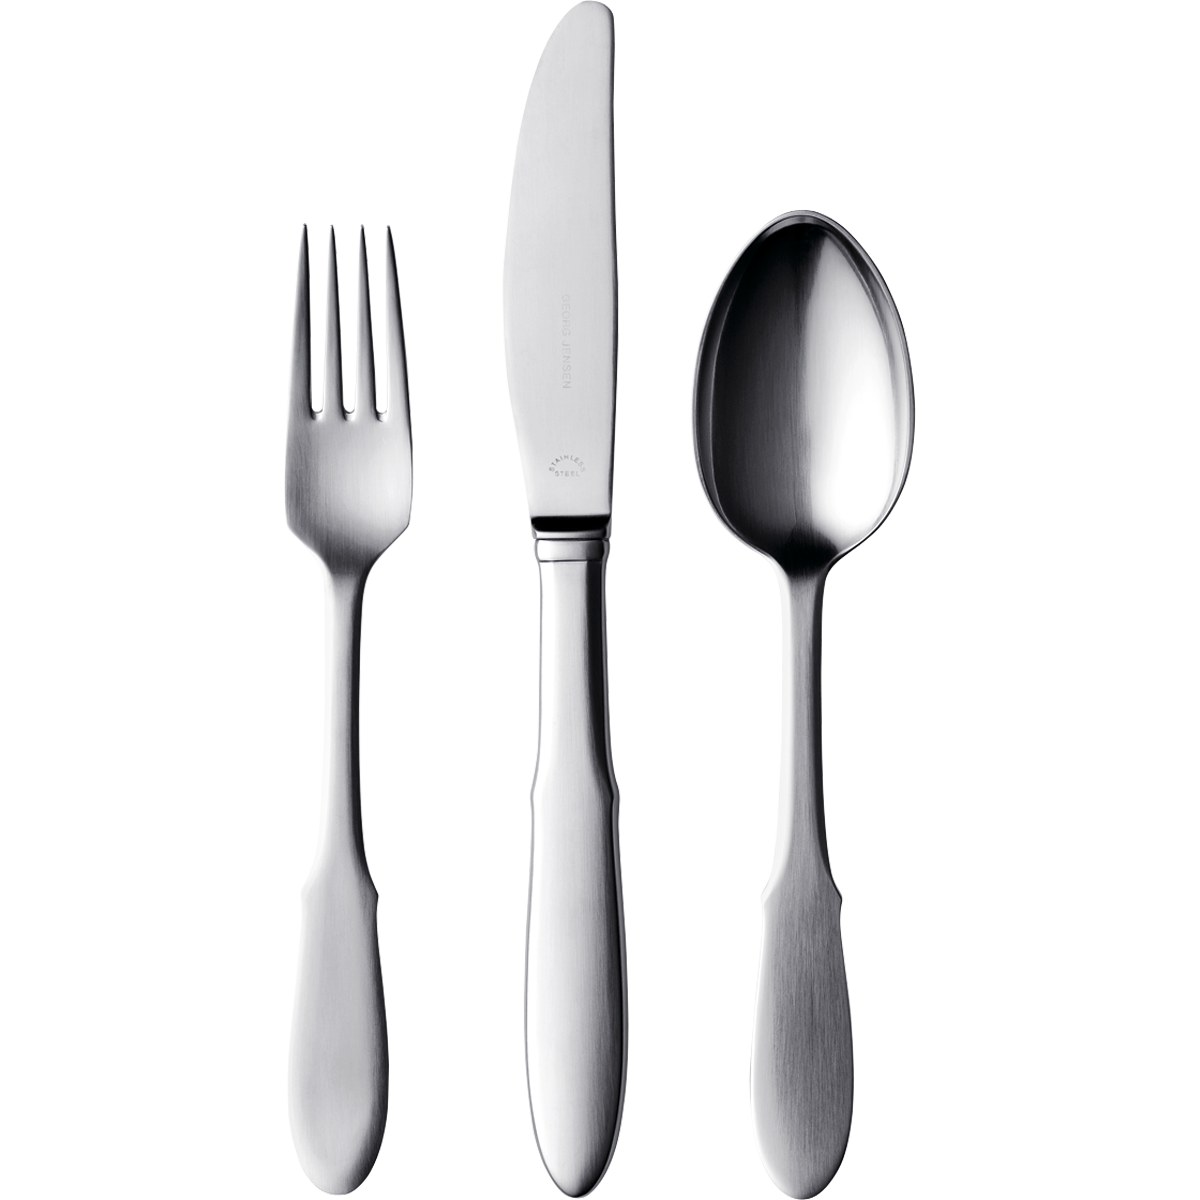 Fork spoon house clipart banner freeuse download Fork, spoon and knife PNG #3657 - Free Icons and PNG Backgrounds banner freeuse download